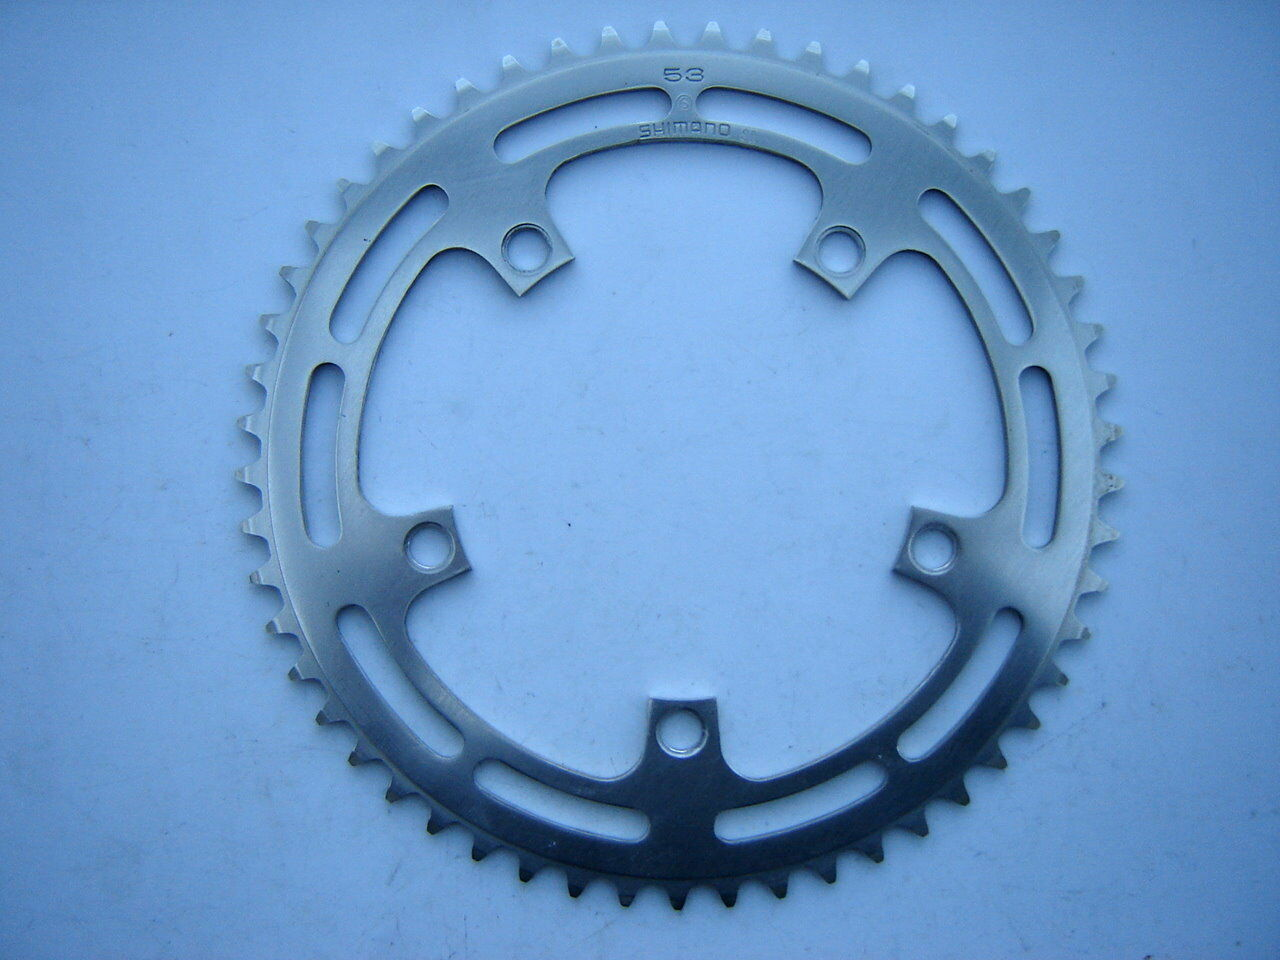 SHIMANO CHAINRING - 53 T - 130 BCD - 1994 - NOS